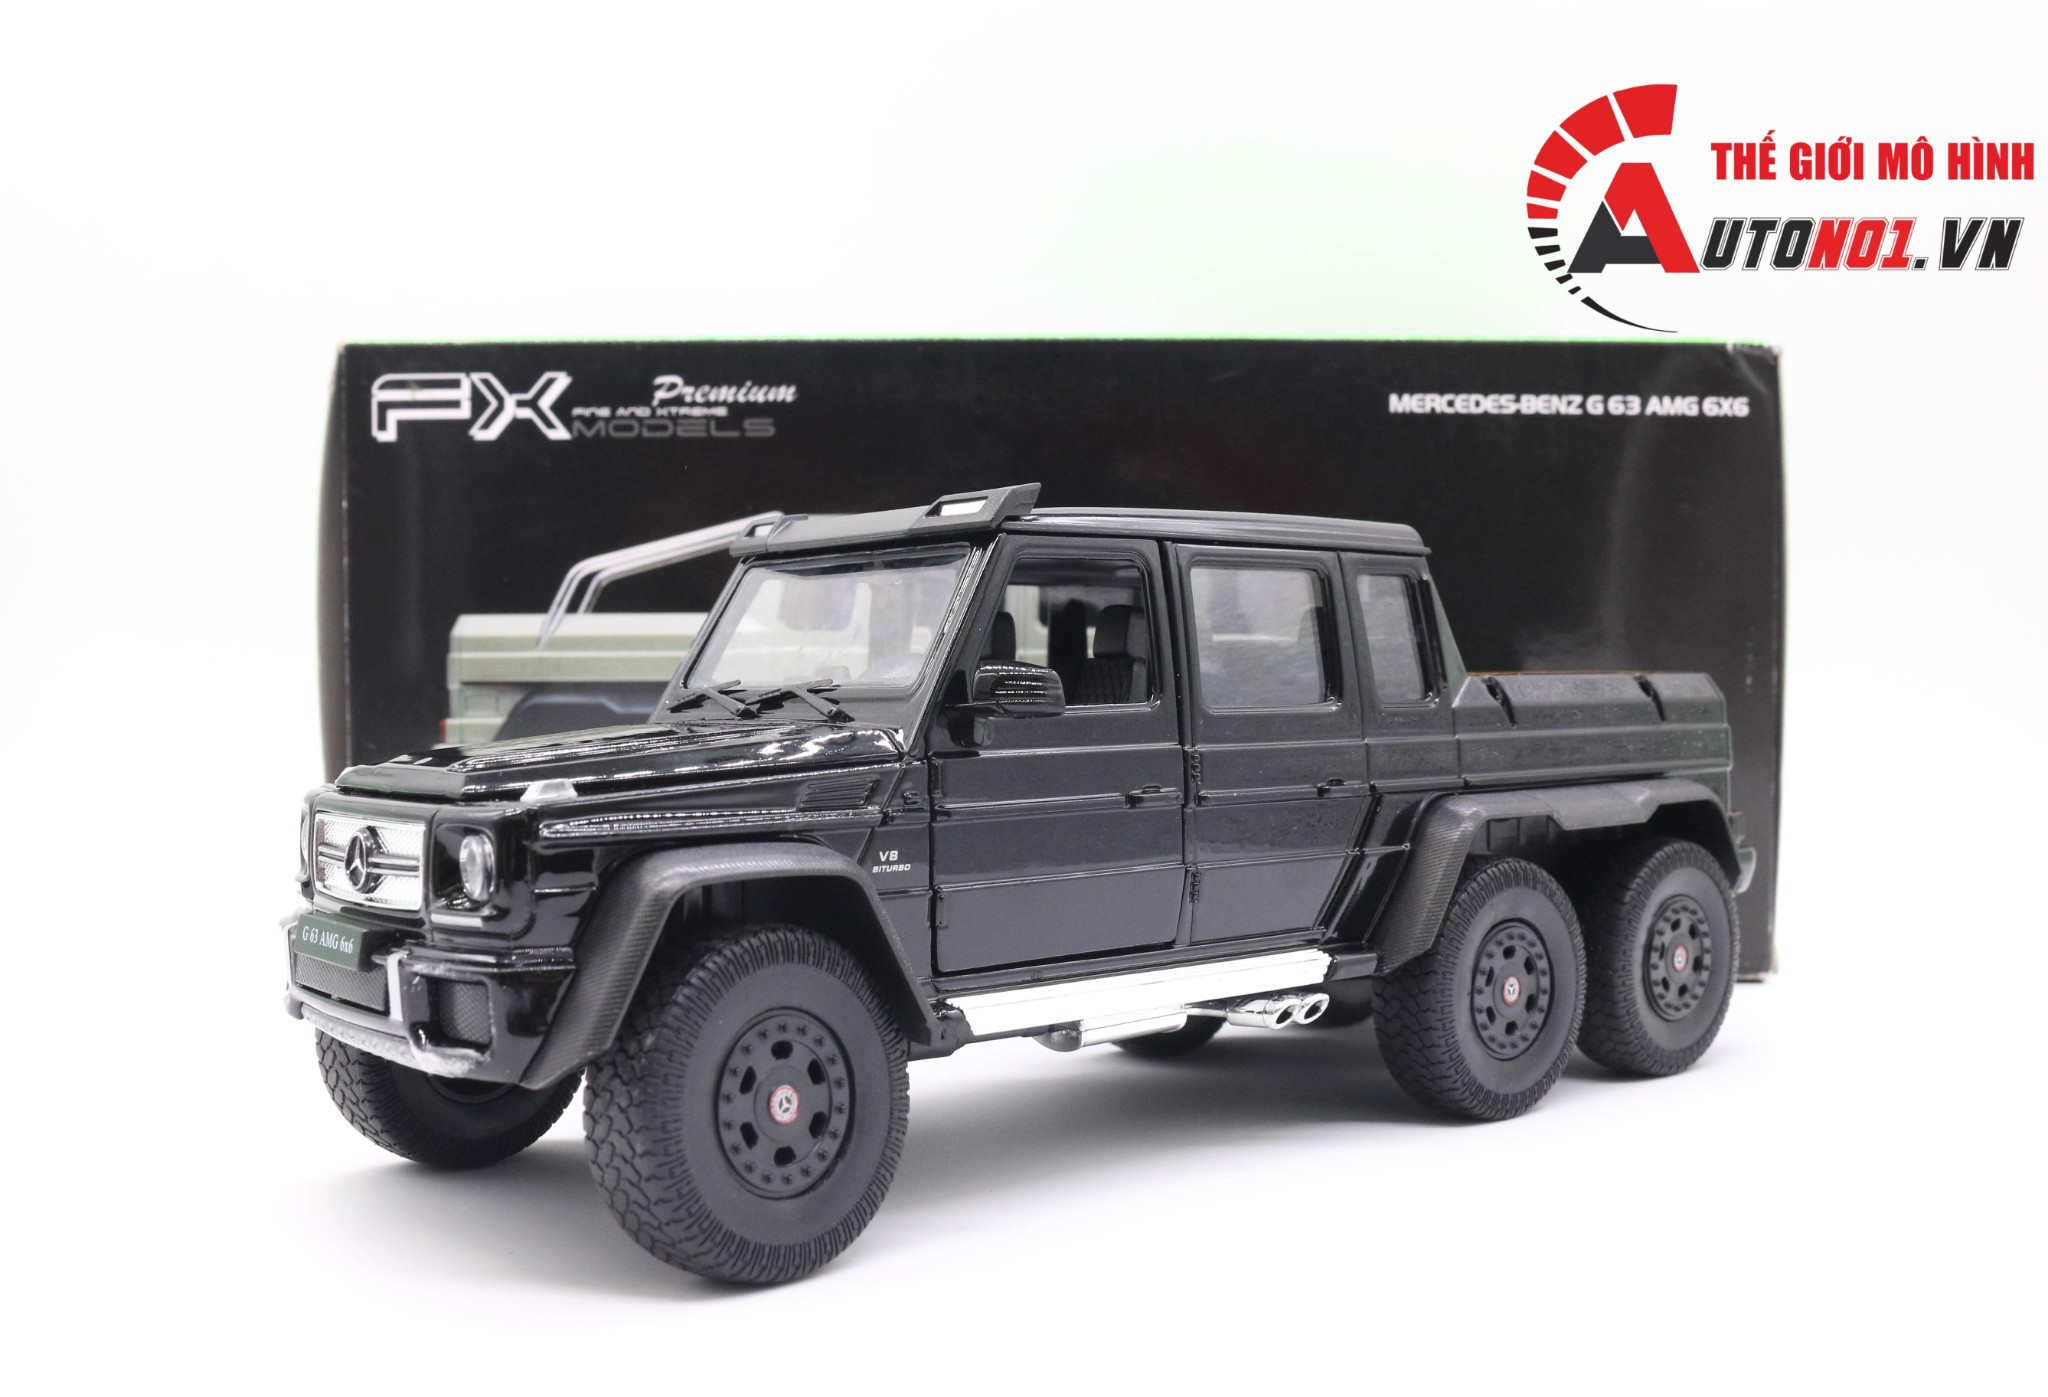 MÔ HÌNH MERCEDES BENZ G63 6X6 BLACK 1:24 WELLY 3381